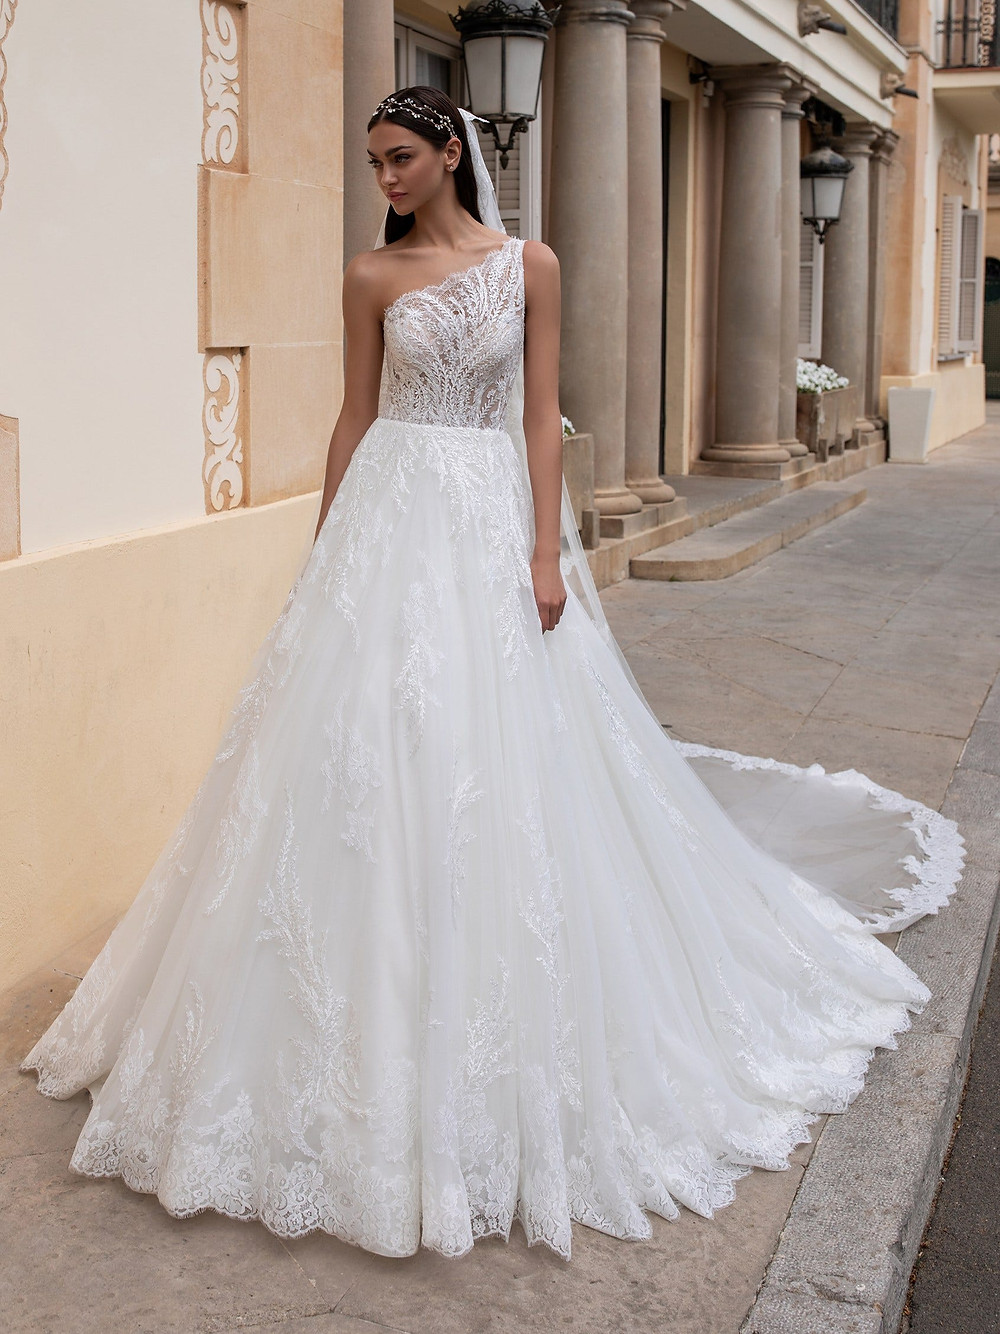 A one shoulder, ball gown wedding dress with lace detail